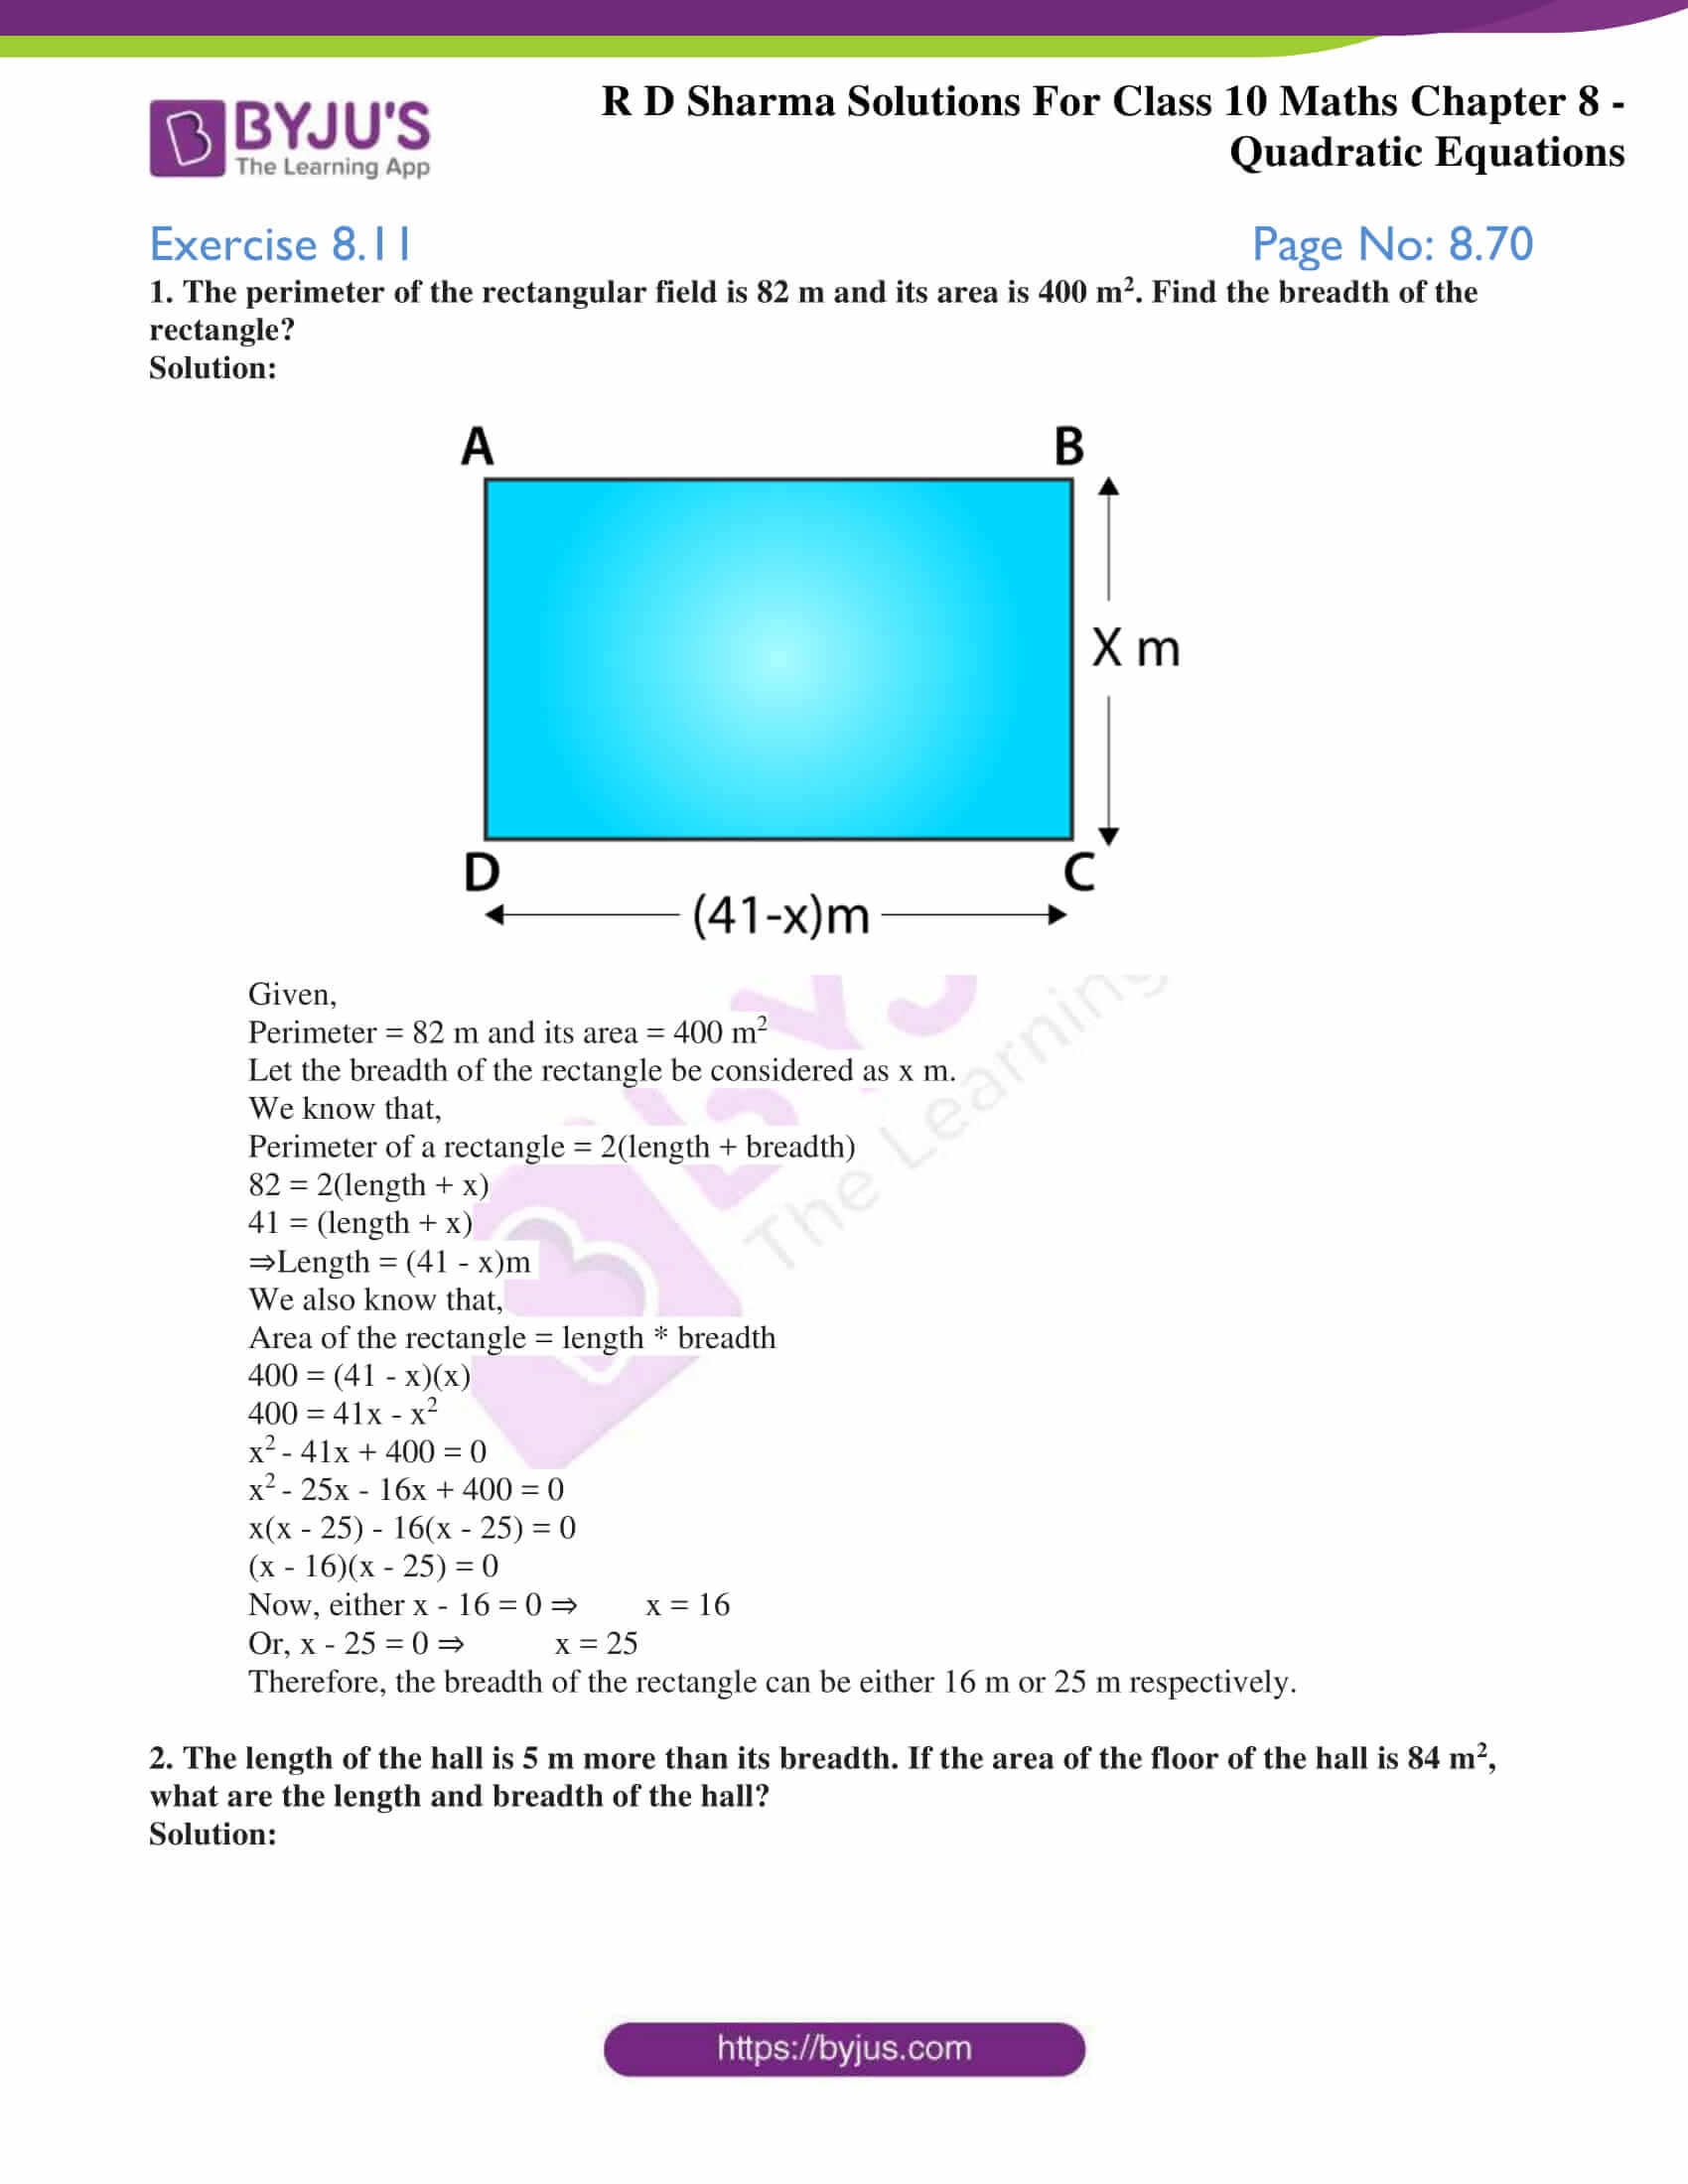 RD Sharma Solutions for Class 10 Chapter 8 Quadratic Equations Exercise 8.11 66